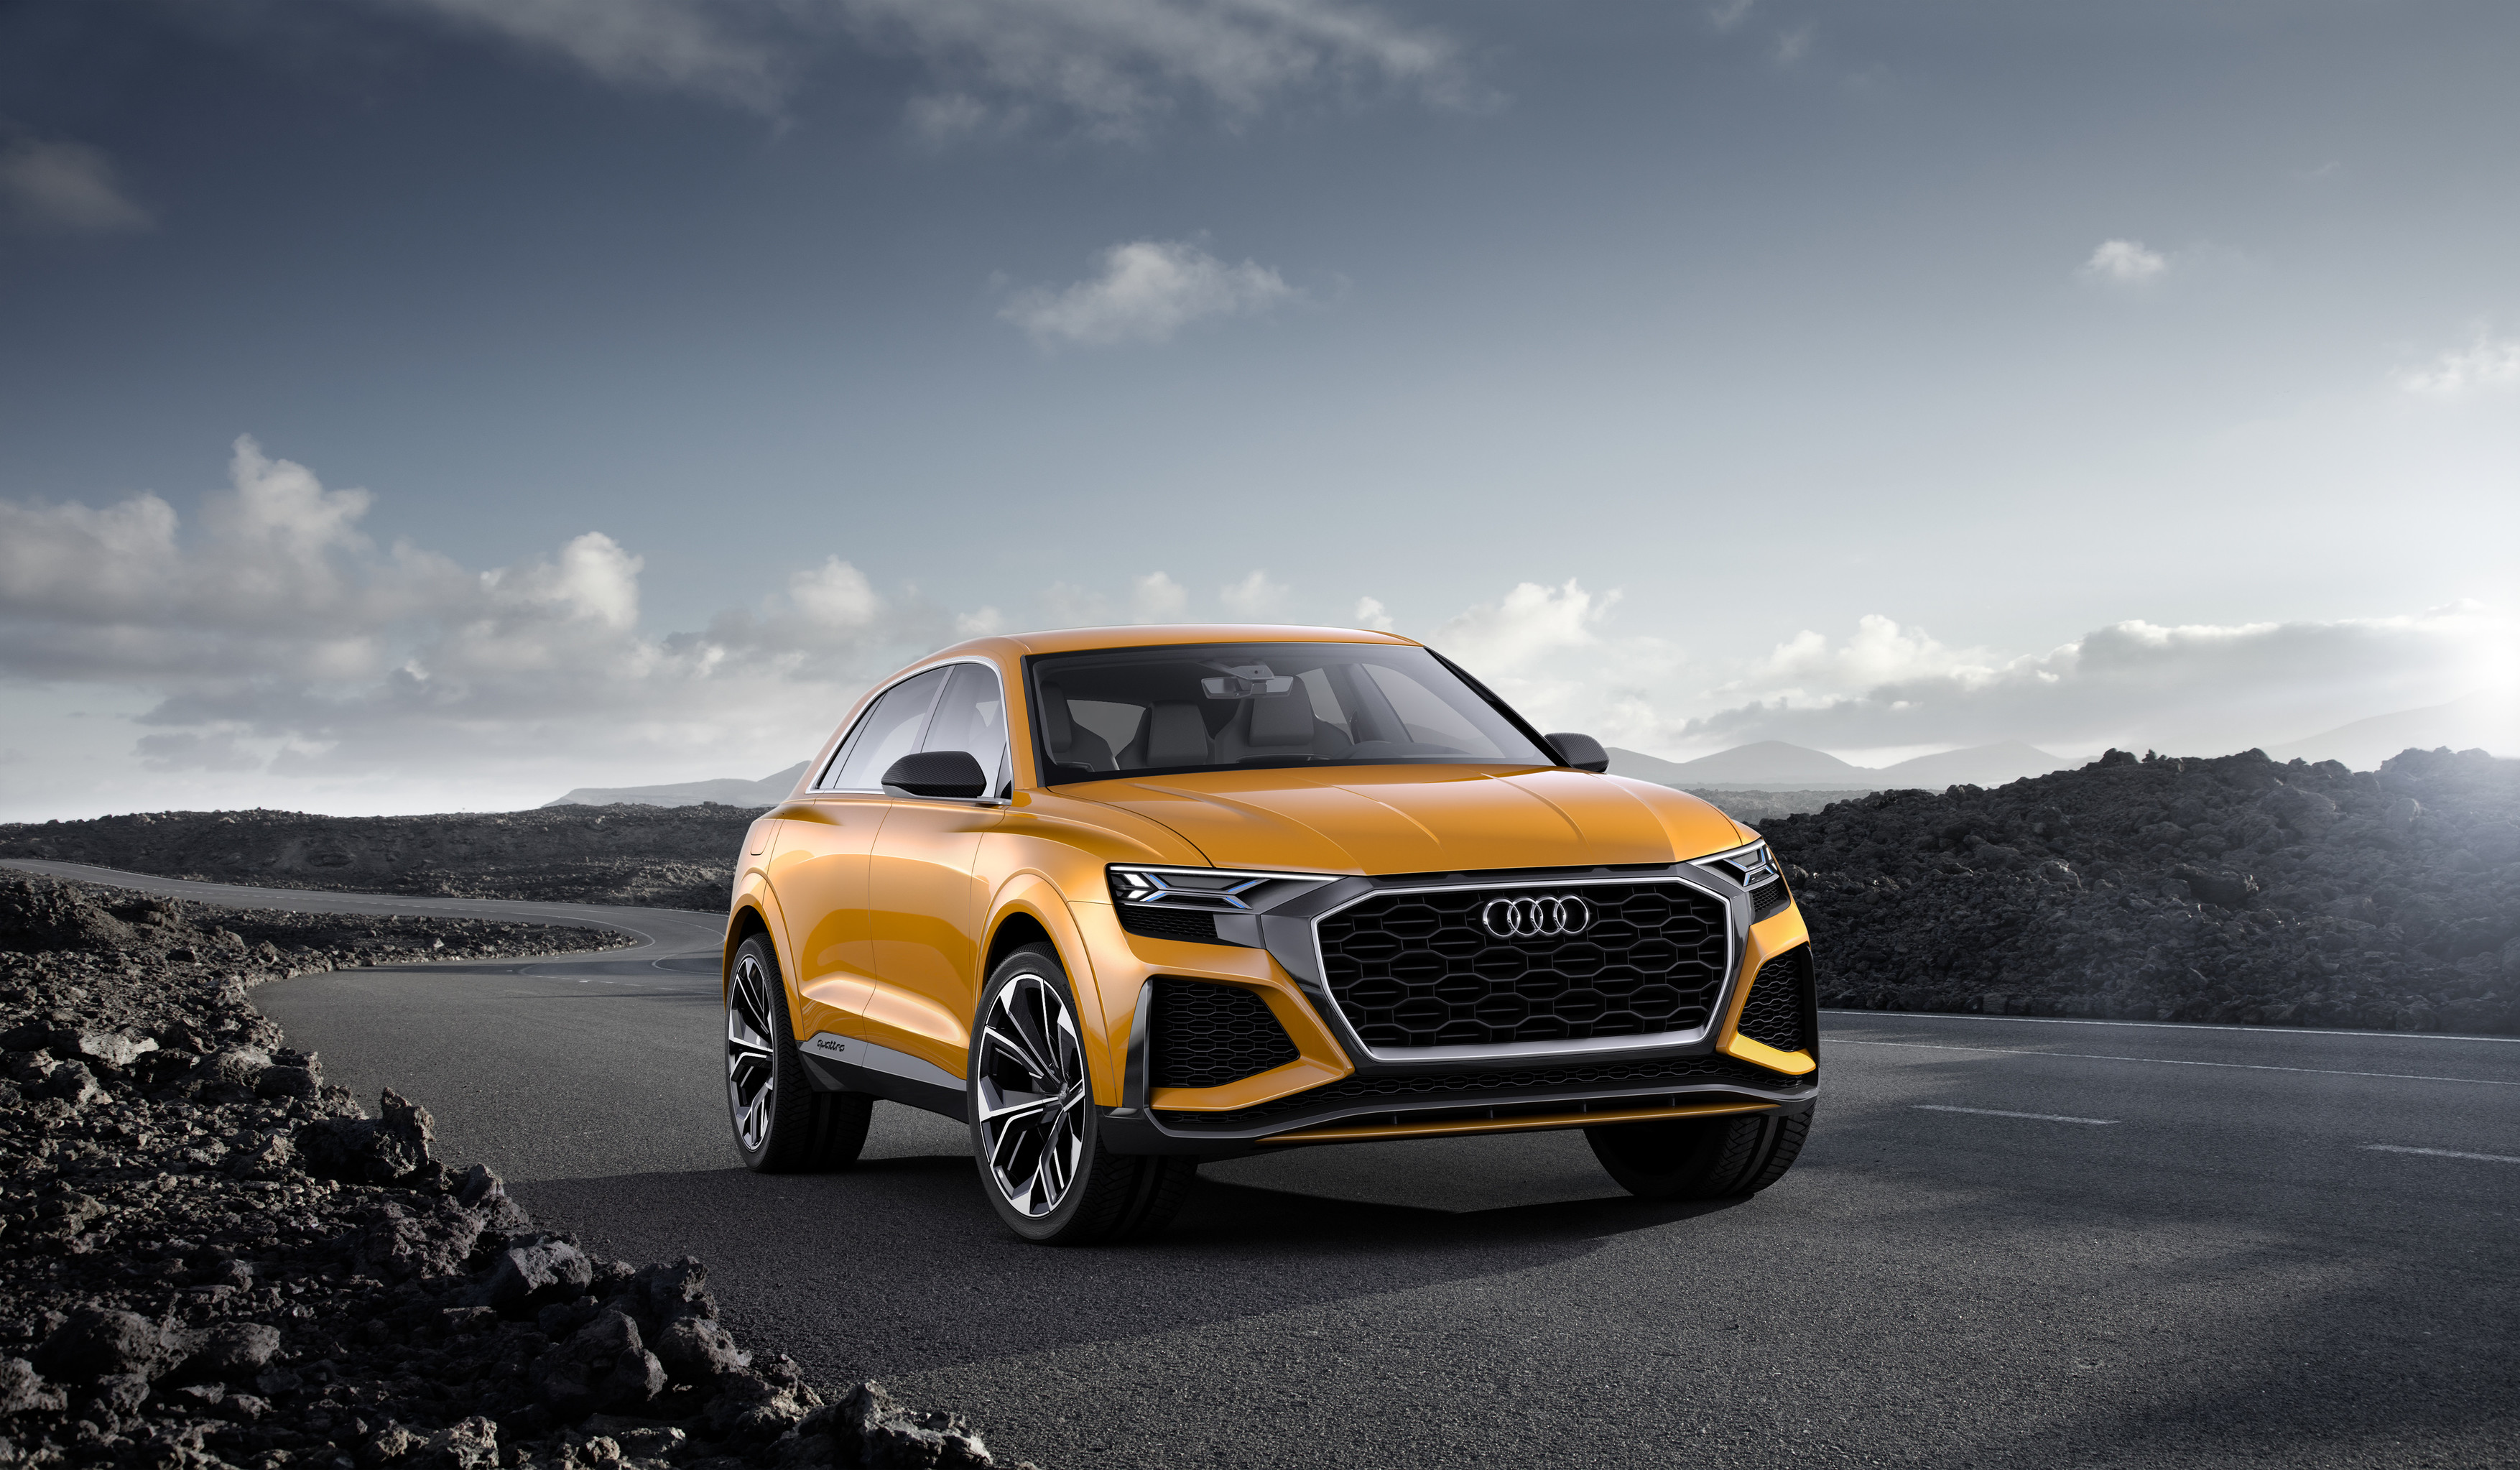 Two new Audis to join the Q: Audi Q8 and Audi Q4